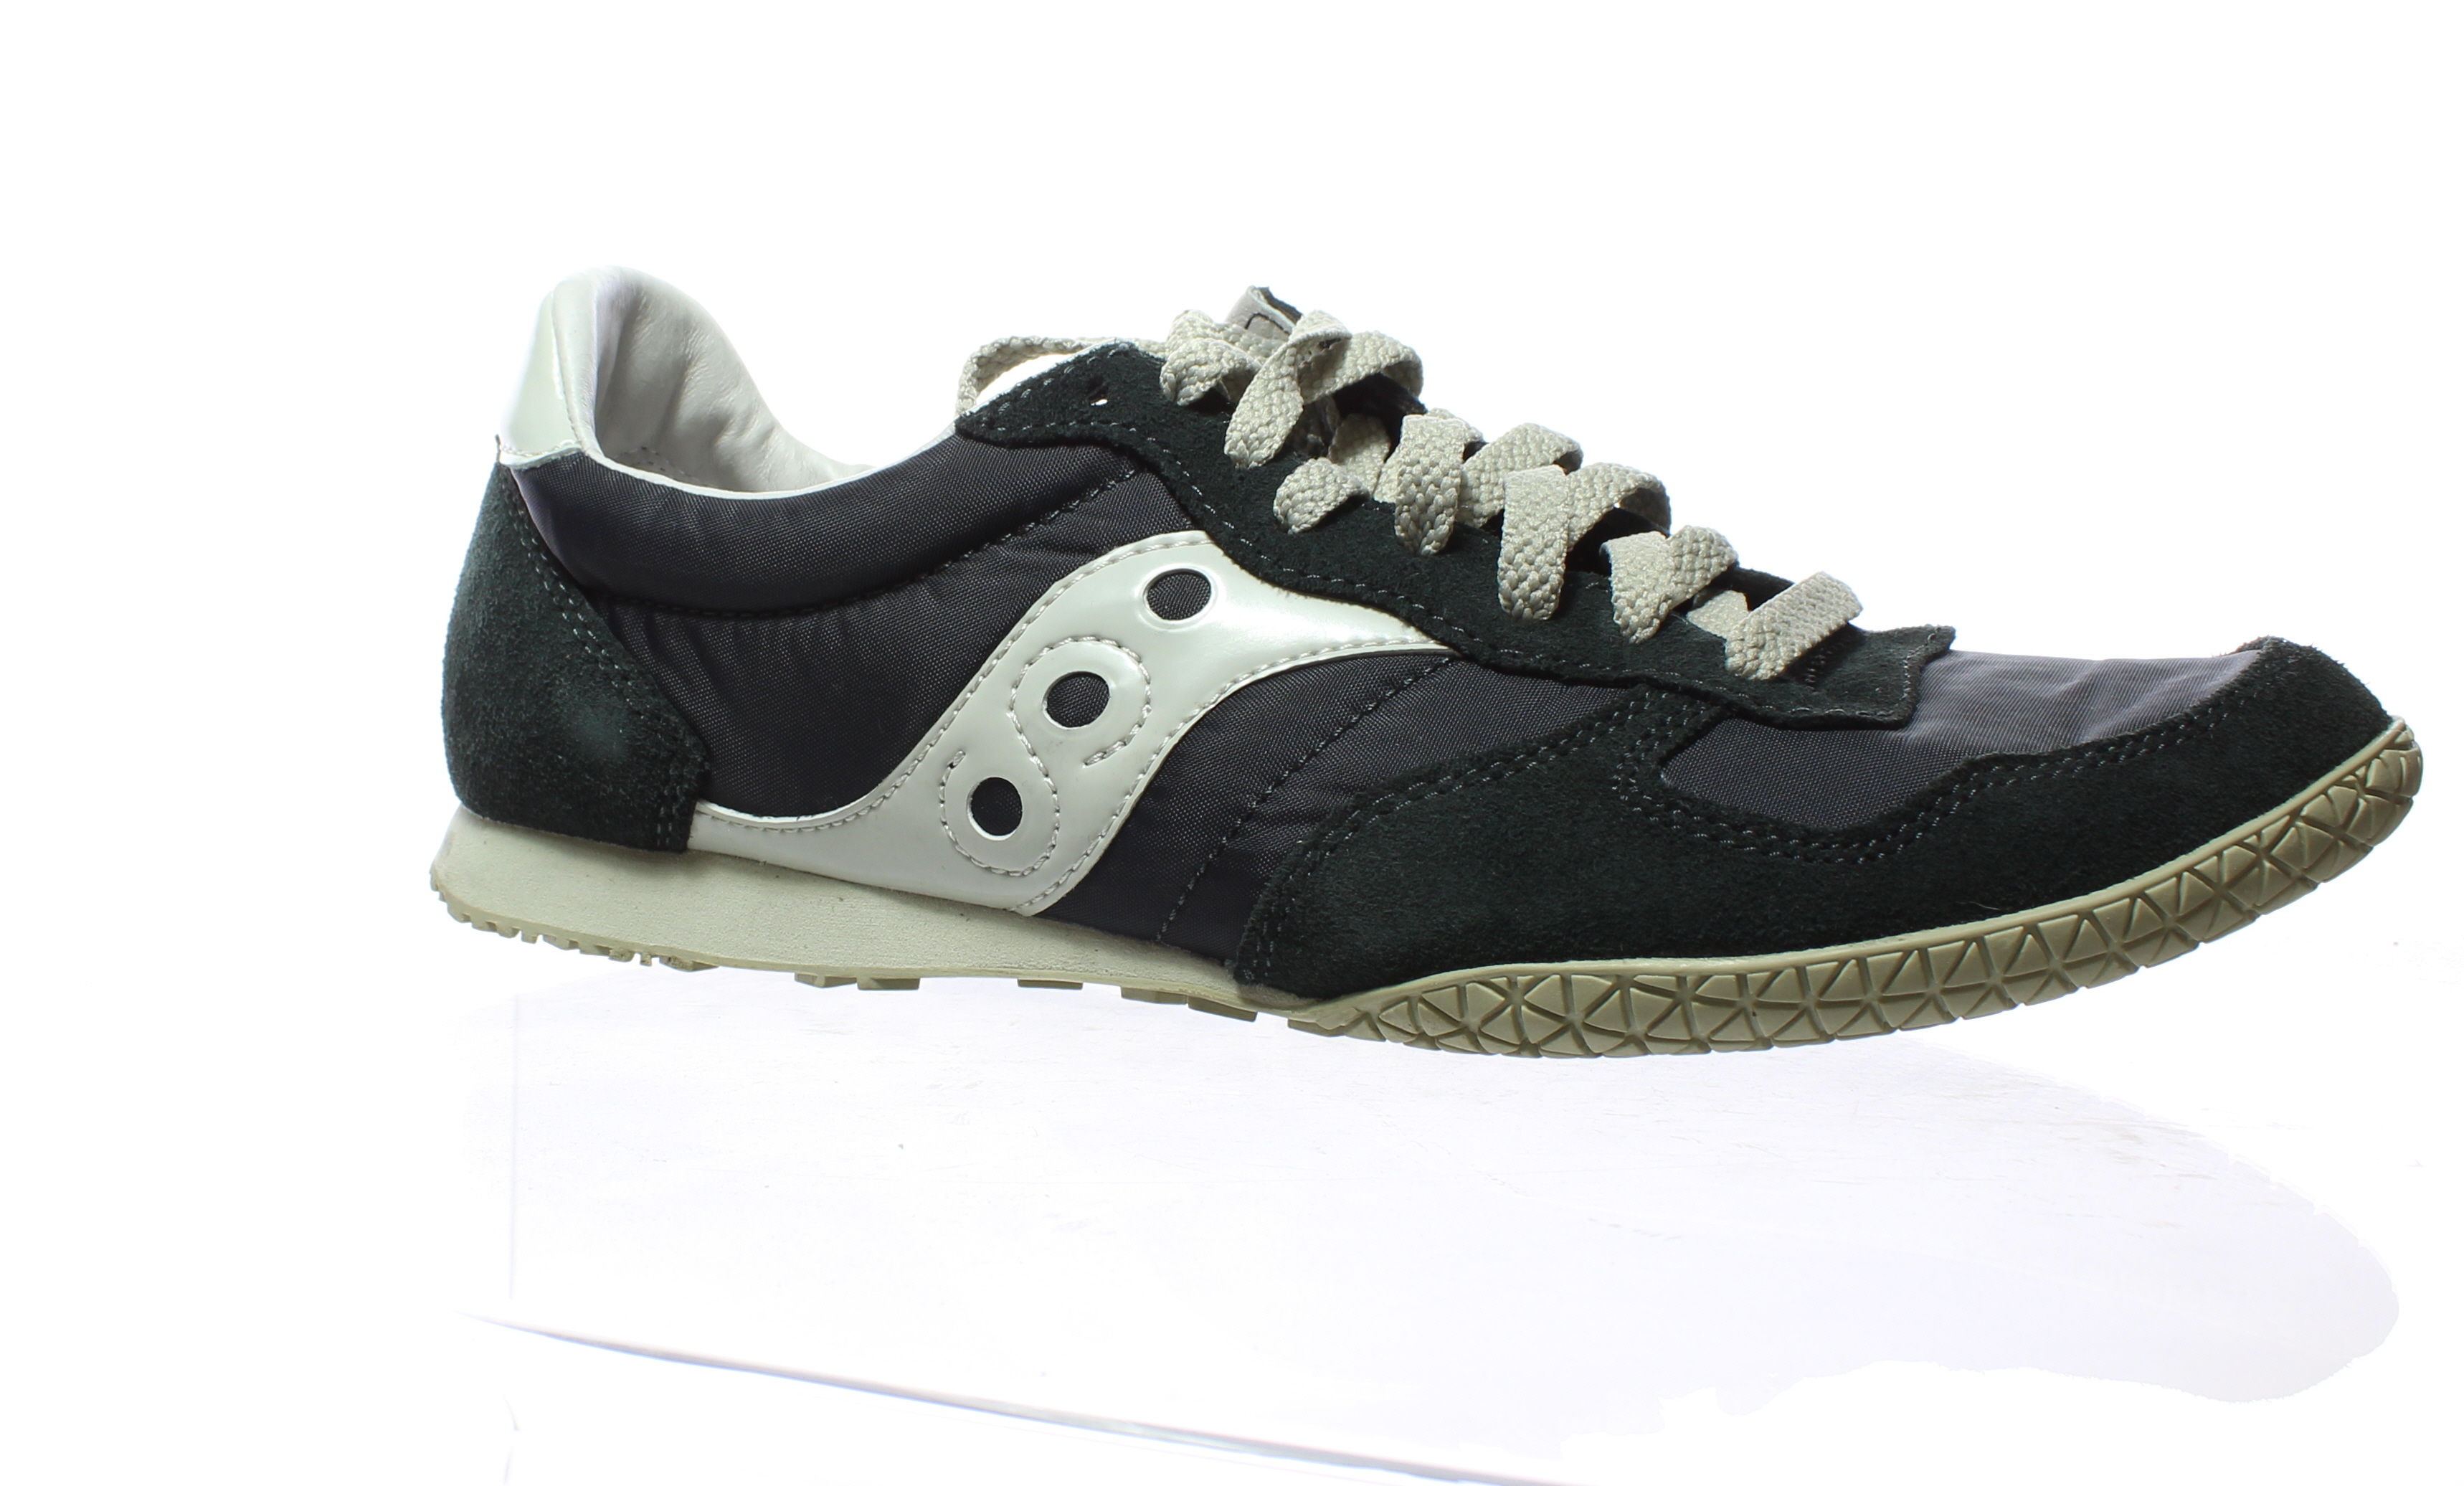 96c7e5afda09 Details about Saucony Mens Bullet Navy Gray Running Shoes Size 9 (210331)